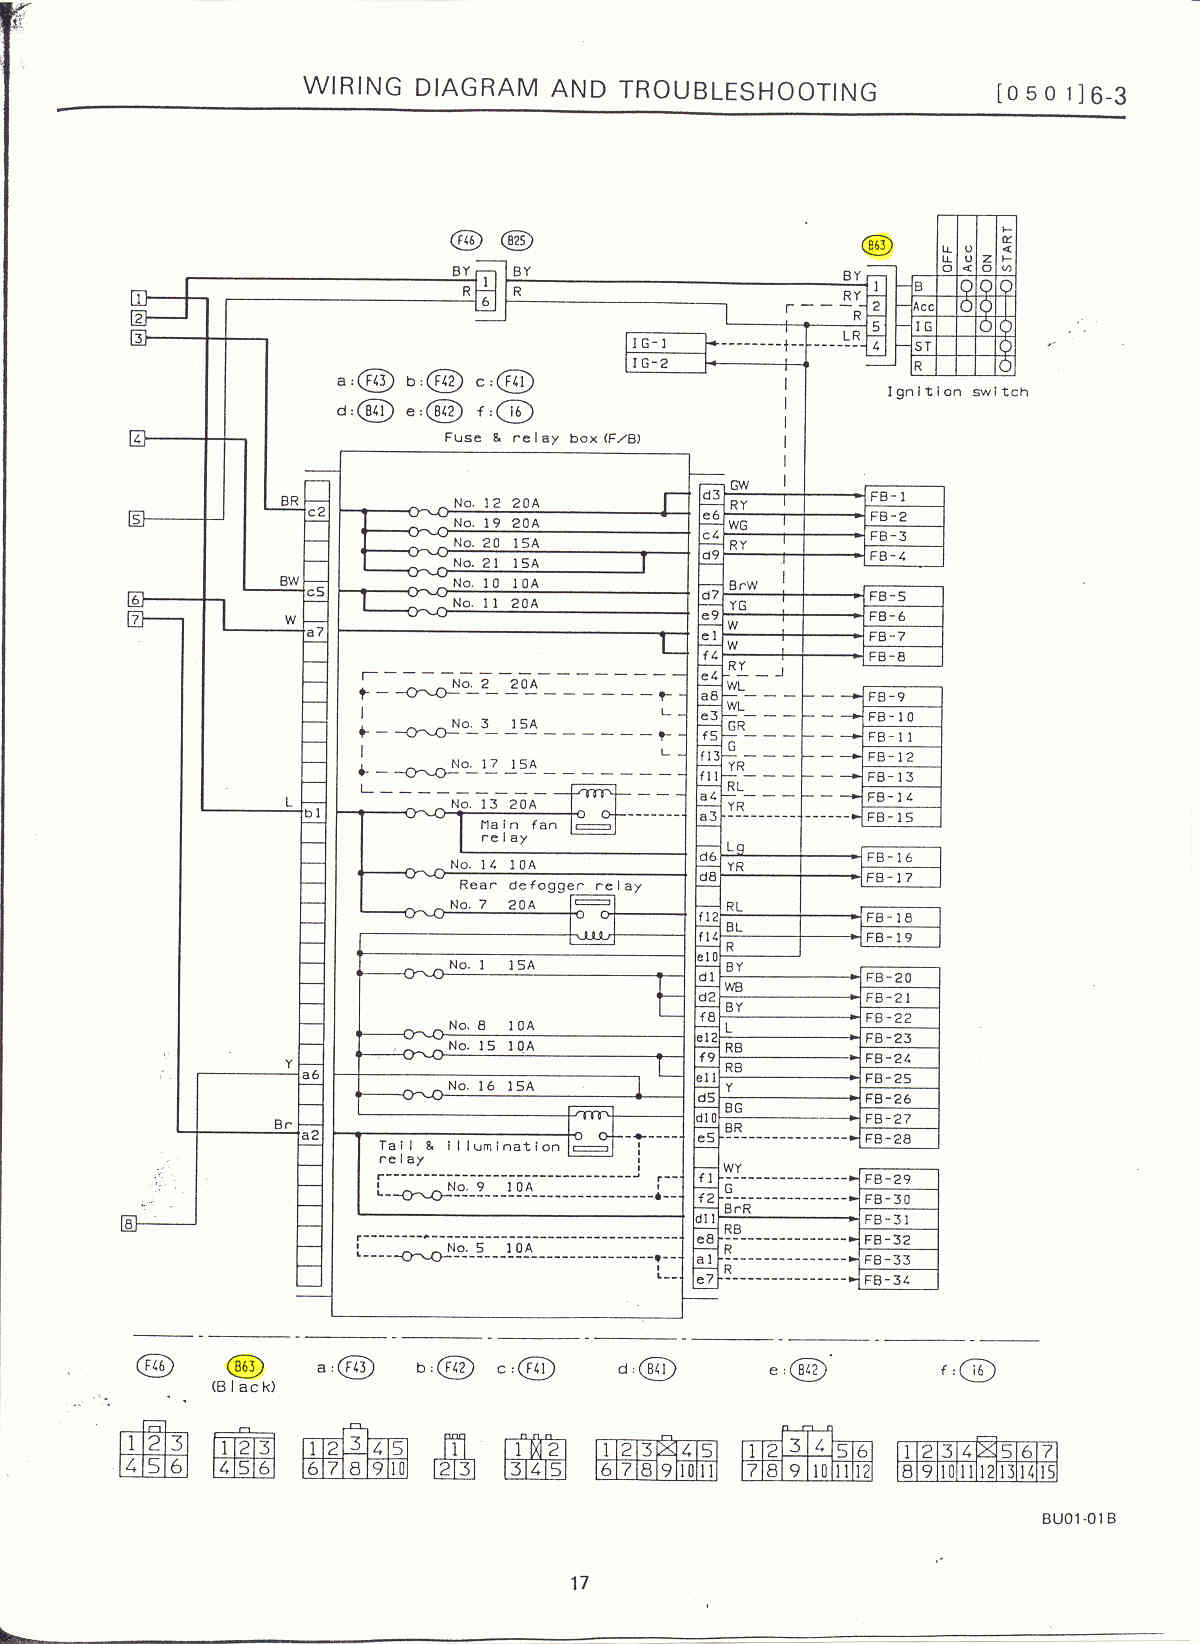 hight resolution of subaru baja fuse box diagram circuit wiring diagrams subaru radiator fan wiring diagram subaru forester wiring diagram